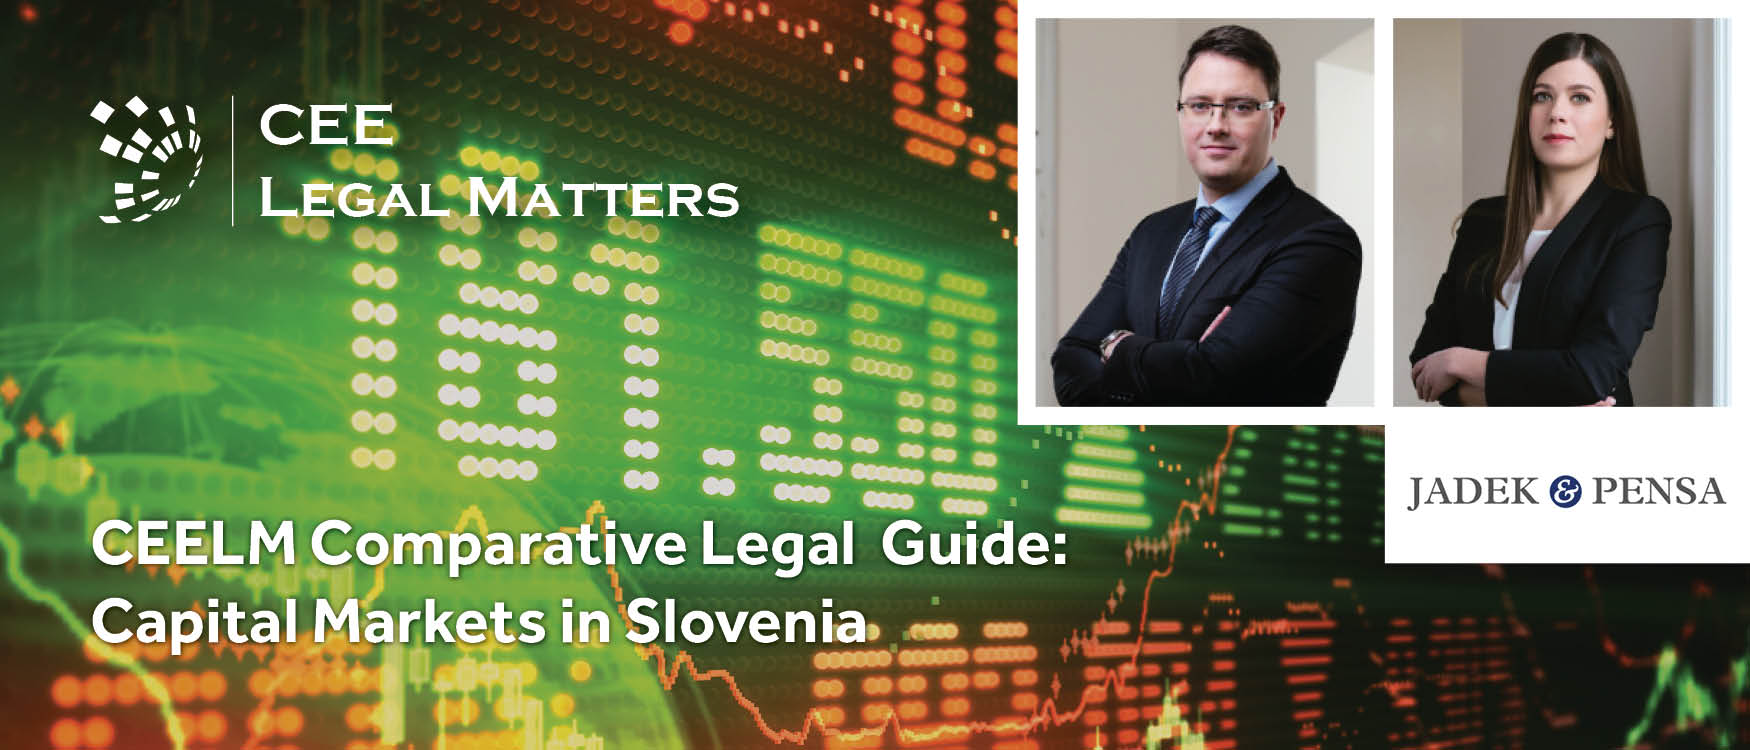 Capital Markets in Slovenia